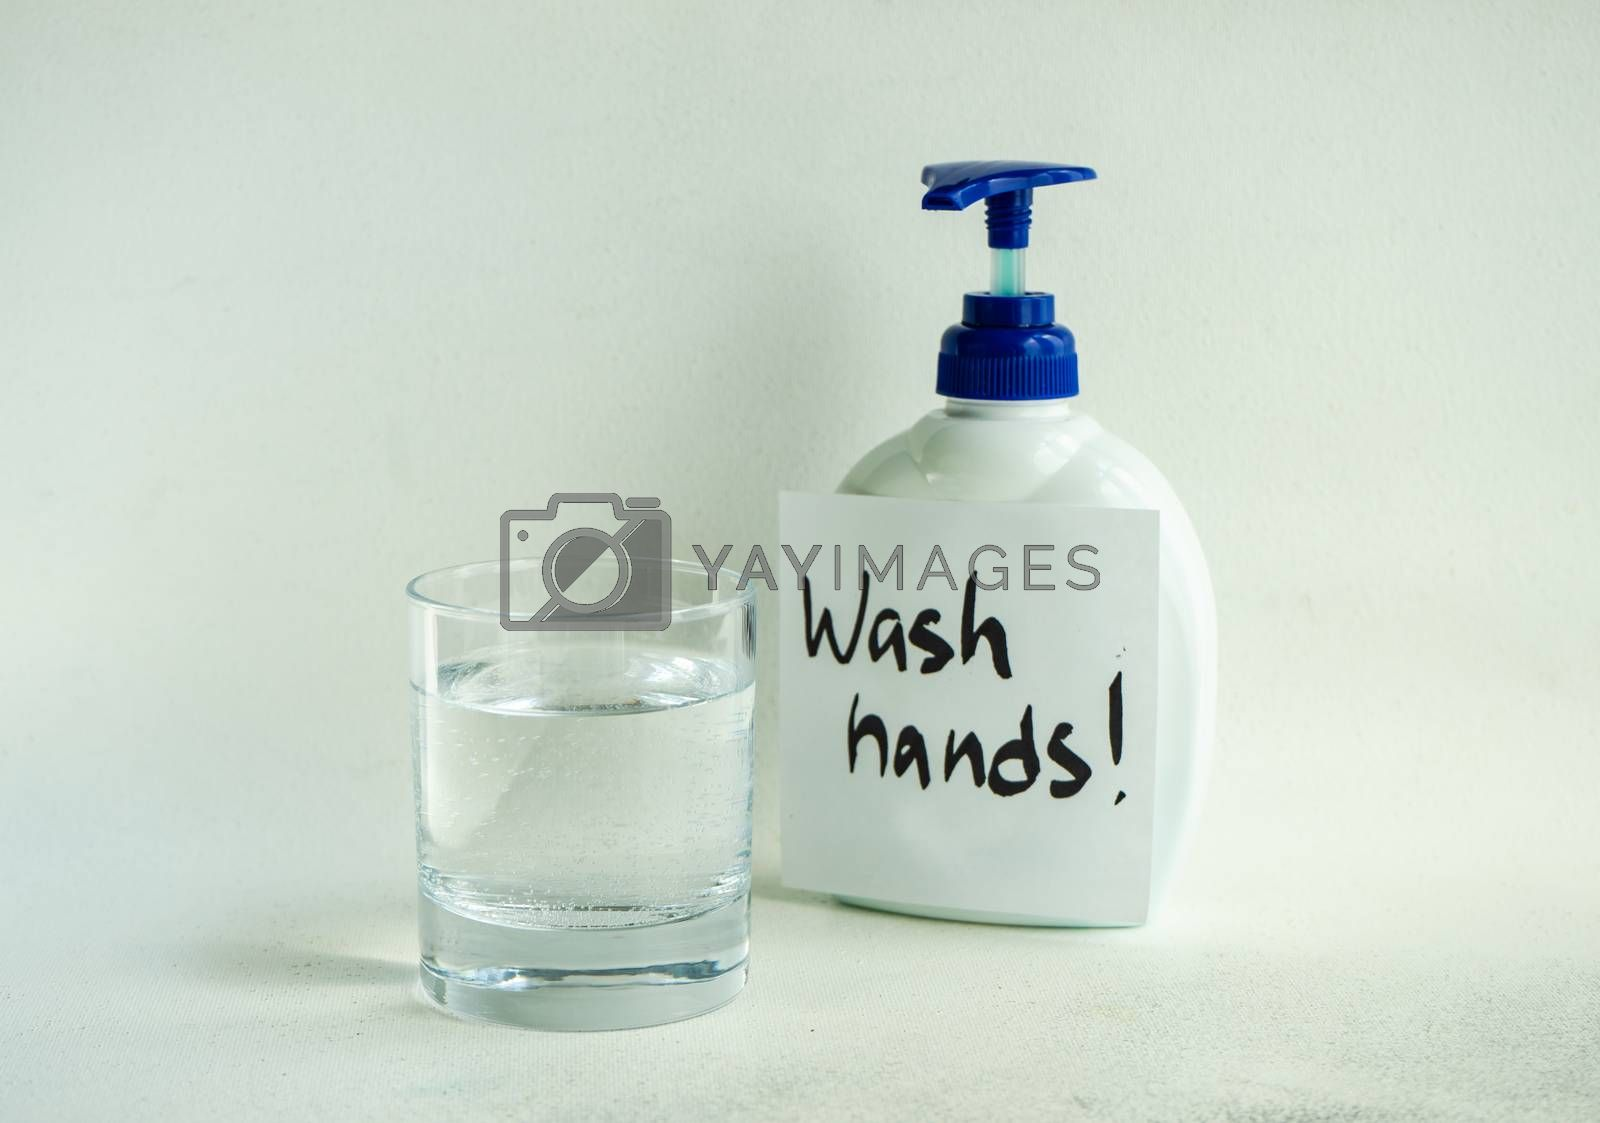 COVID-19 virus concept with antibacterial soap on concrete background with copy space